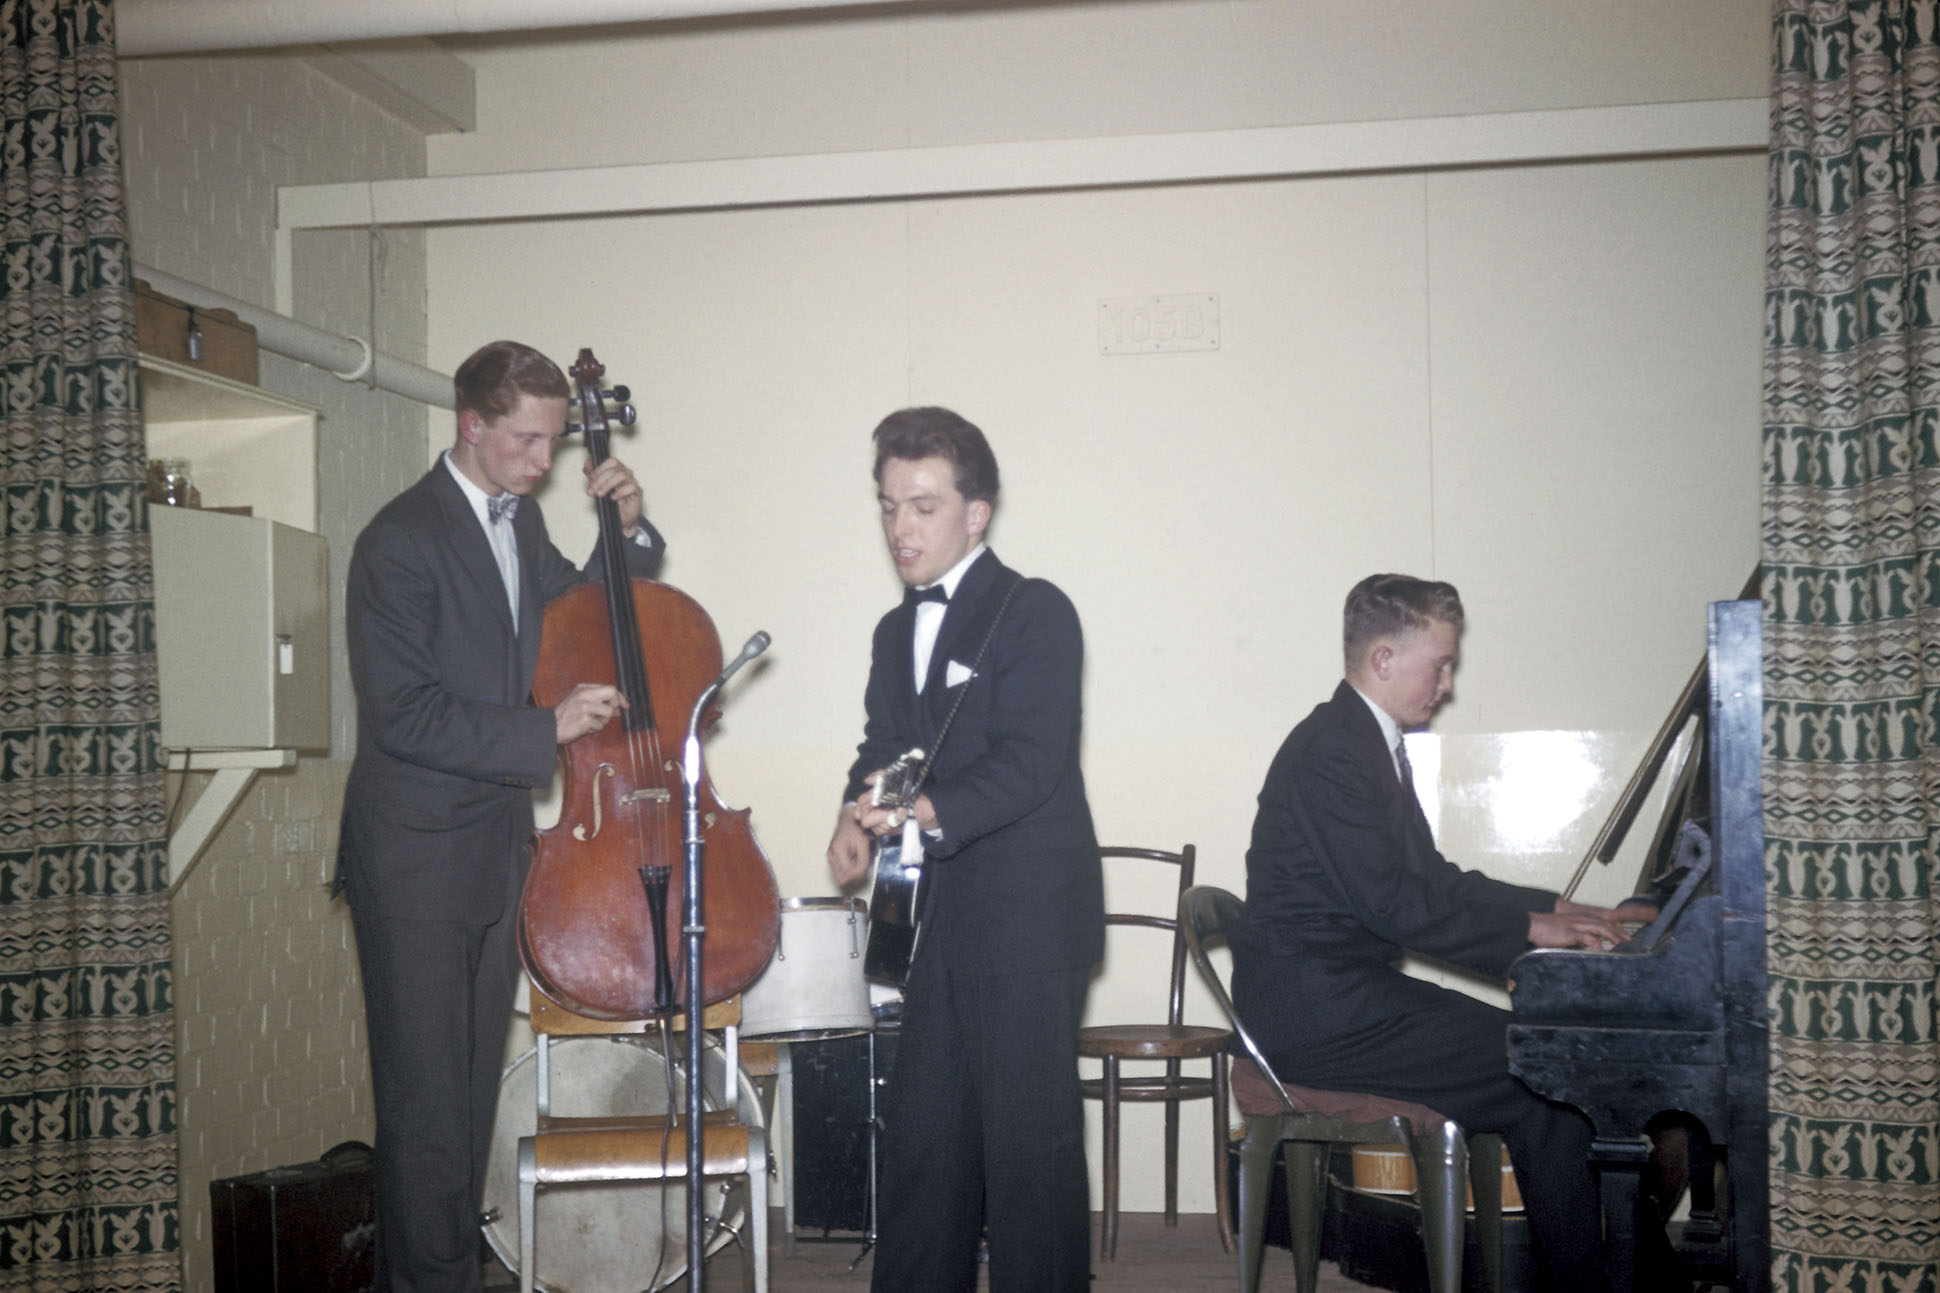 Three young men in a skiffle band with guitar, cello and piano playing a show, 1960 by Clare & Keith Laflin